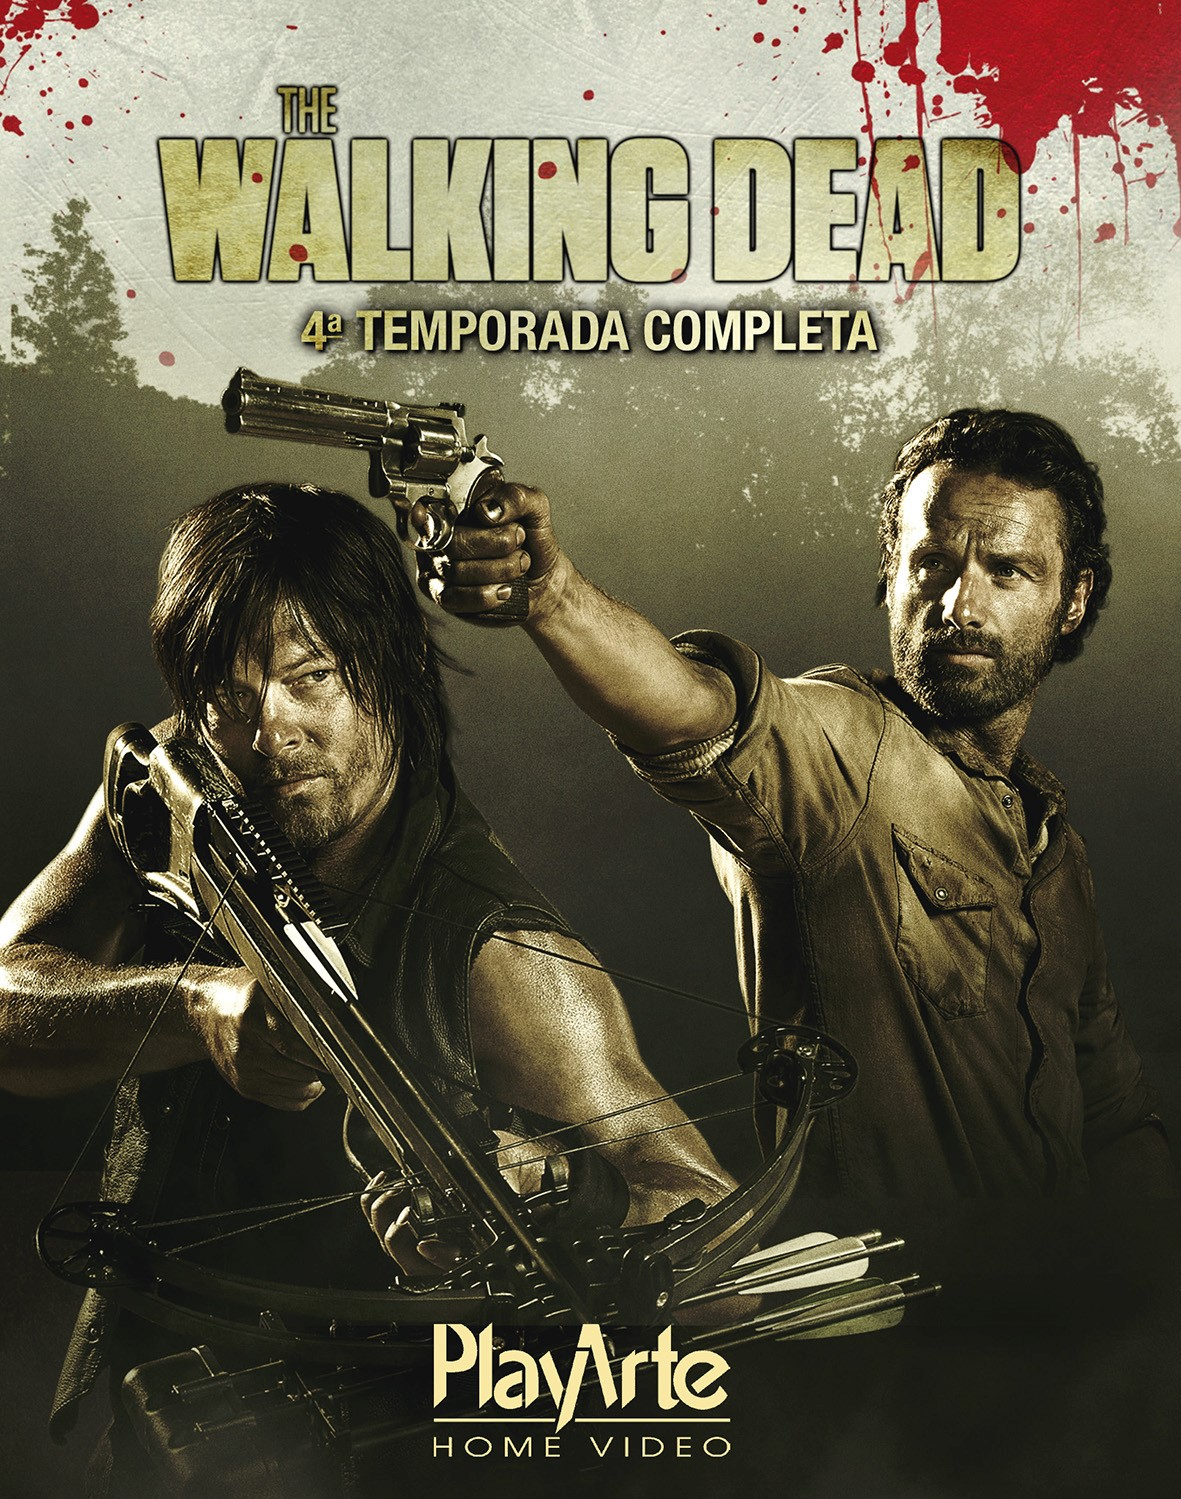 THE WALKING DEAD 4 TEMPORADA – Sindicato dos Comerciarios de Botucatu